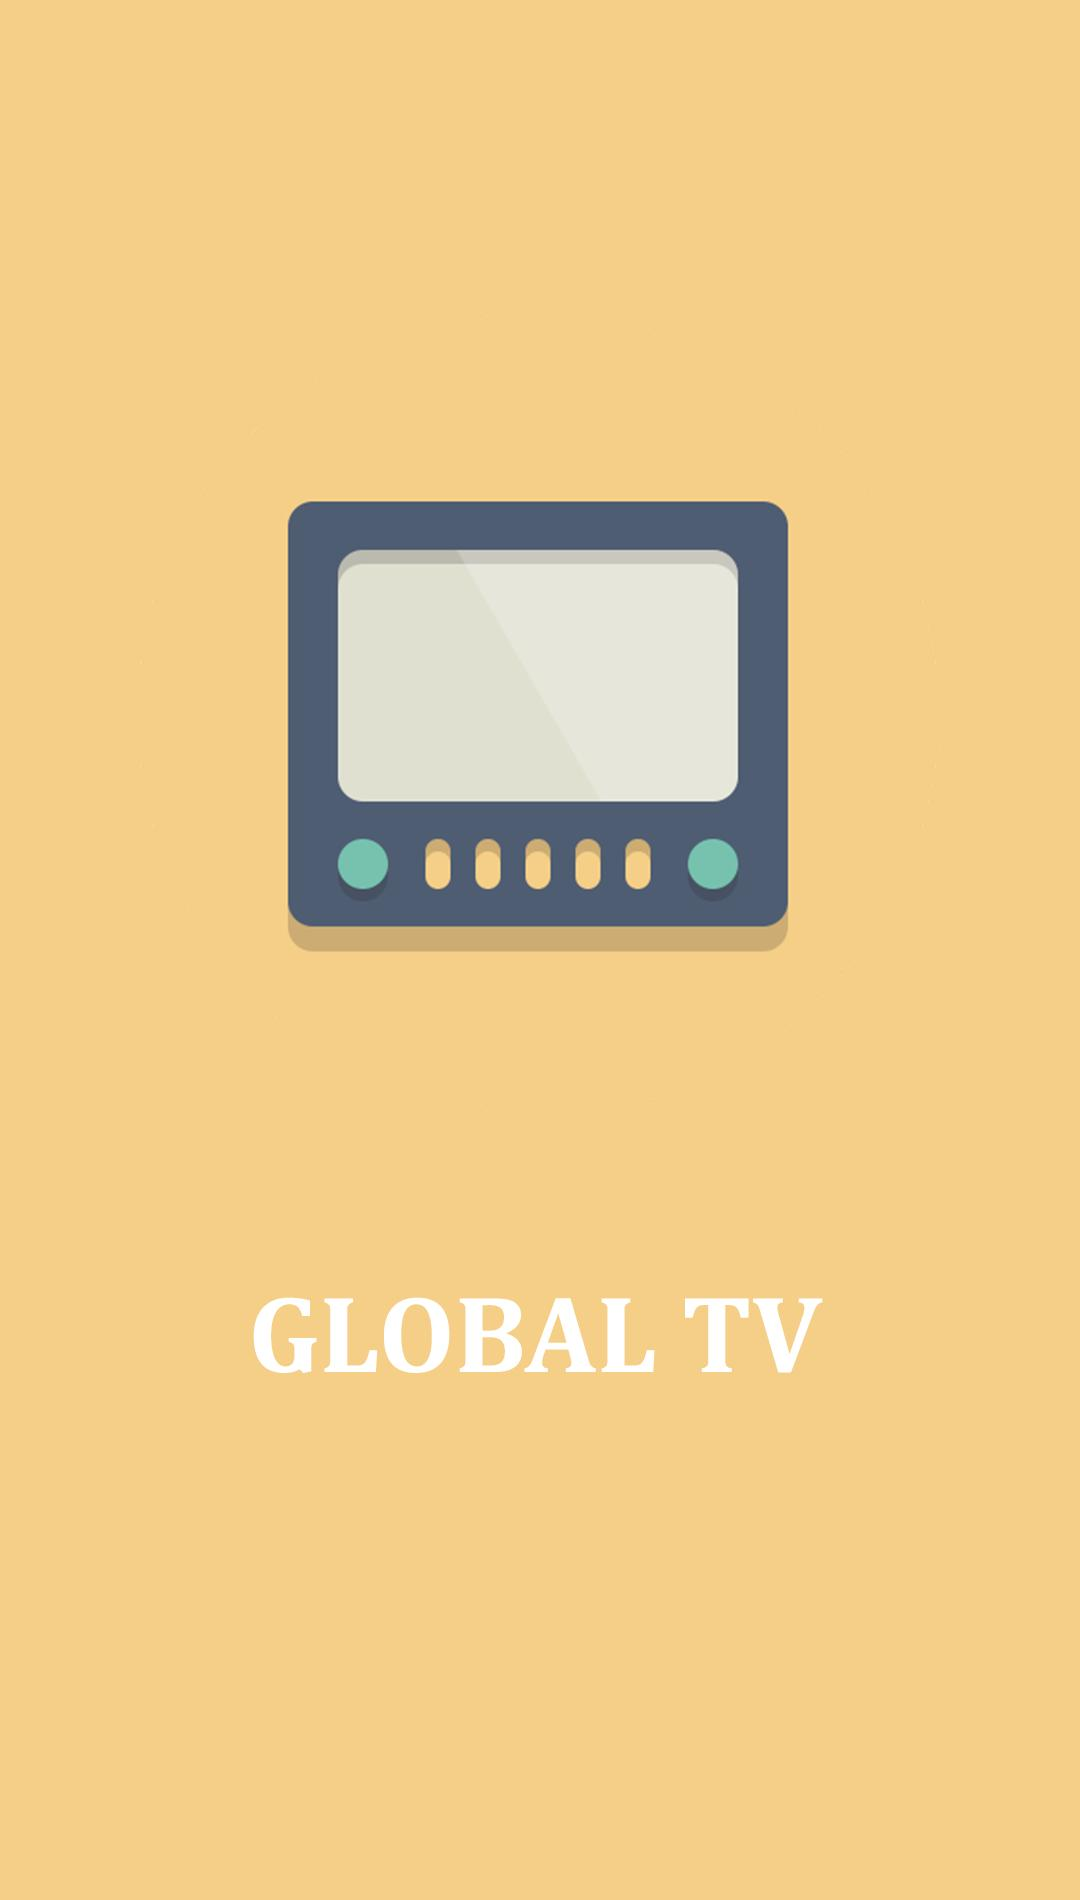 Global TV for Android - APK Download